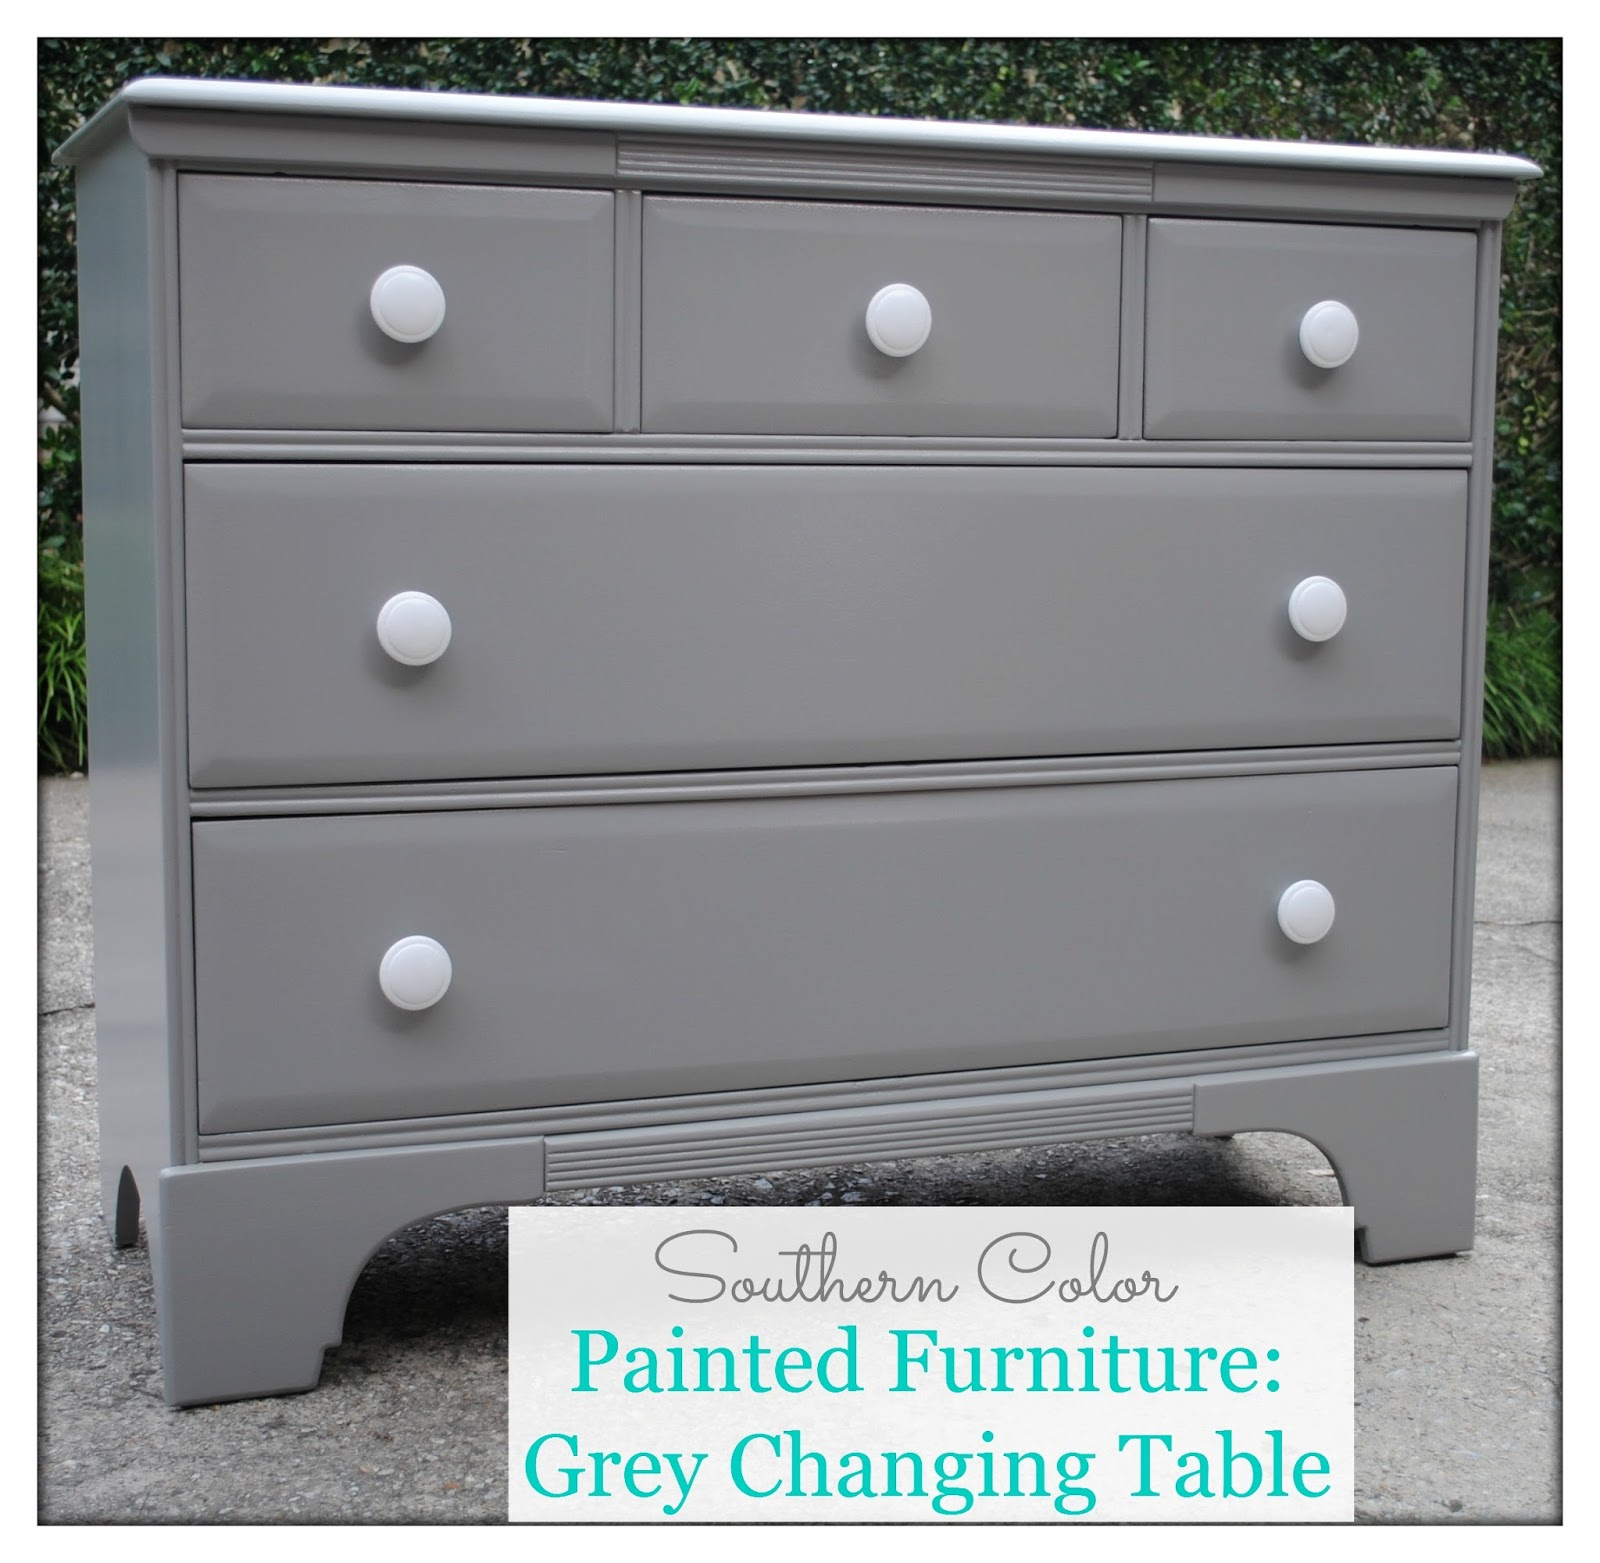 Southern color painted furniture grey changing table Best color to paint dresser